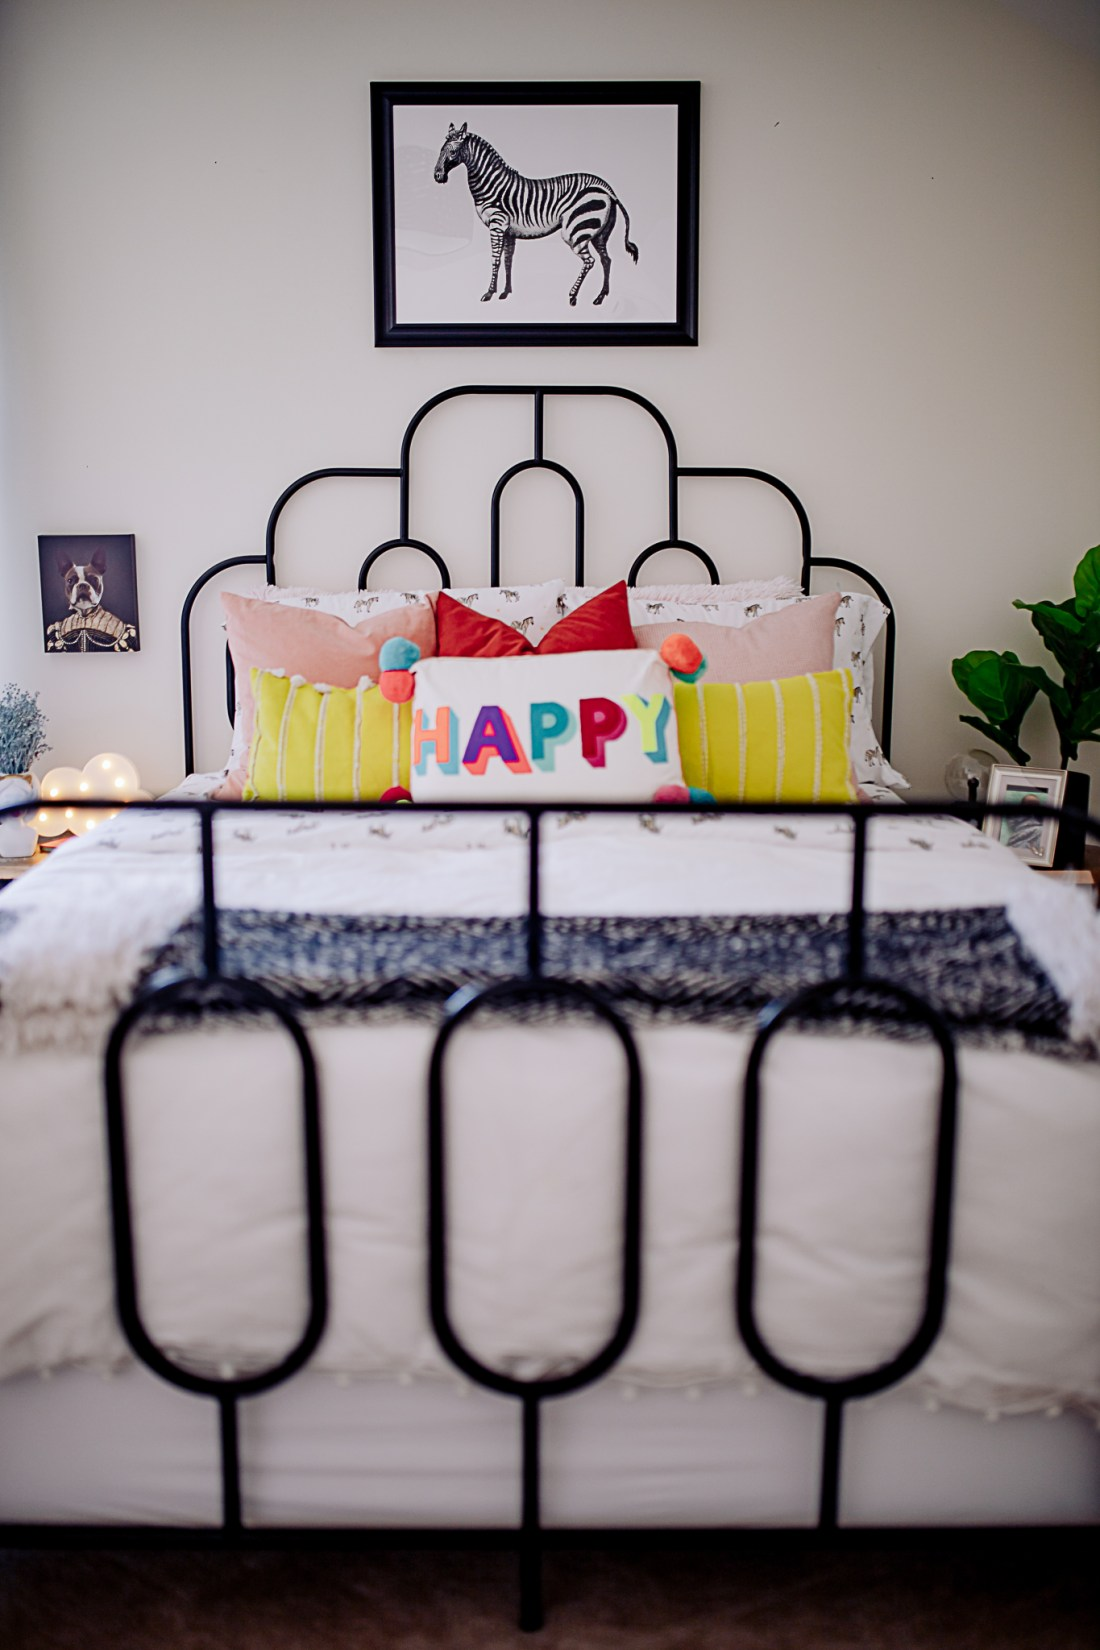 Kids Room by popular Nashville life and style blog, Modern Day Moguls: image of a zebra print hanging above a black metal frame bed with black and white zebra print bedding, yellow and white stripe throw pillows, pink and red velvet throw pillows, and a happy throw pillow.